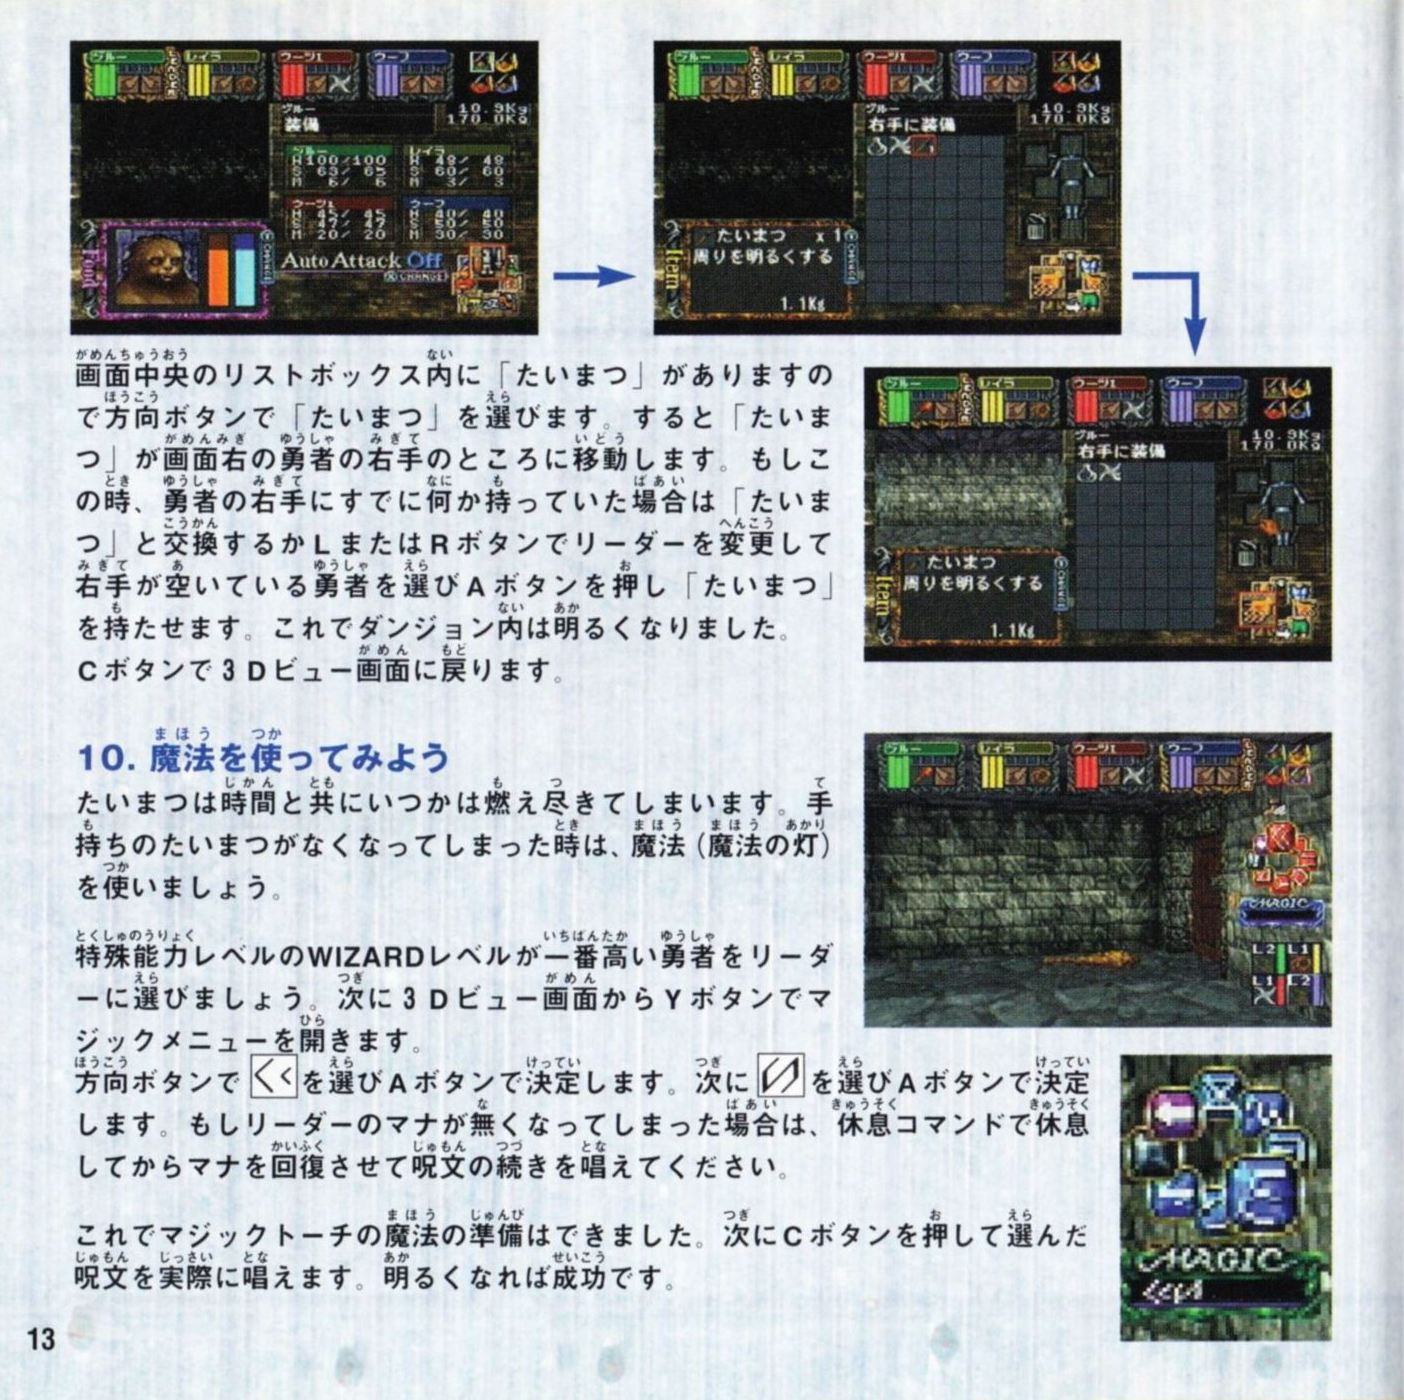 Game - Dungeon Master Nexus - JP - Sega Saturn - Booklet - Page 014 - Scan